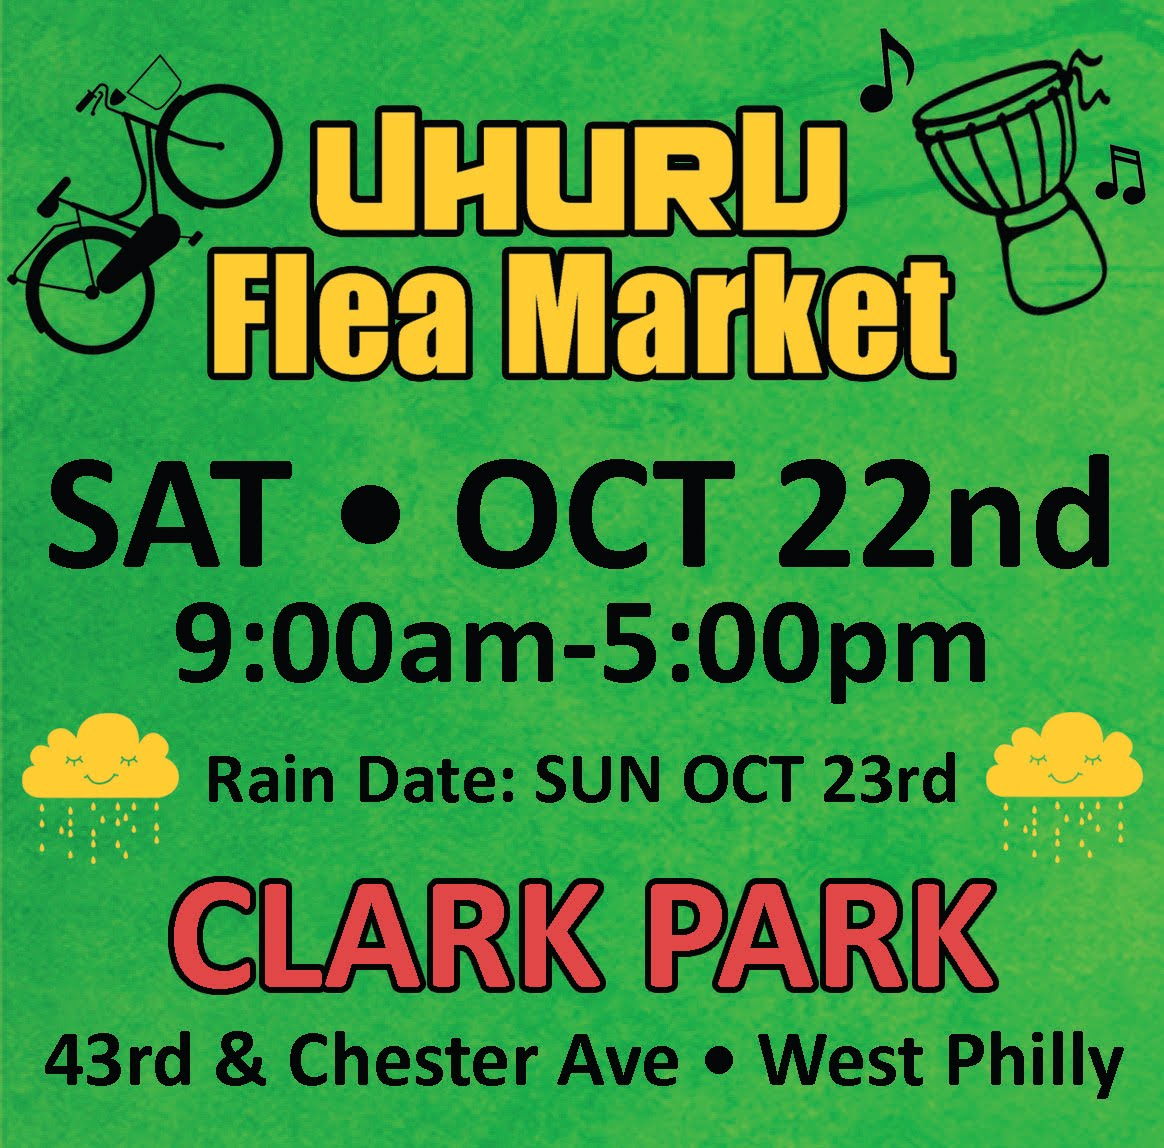 UHURU FLEA MARKET rescheduled for Rain Date Sunday Oct 23rd